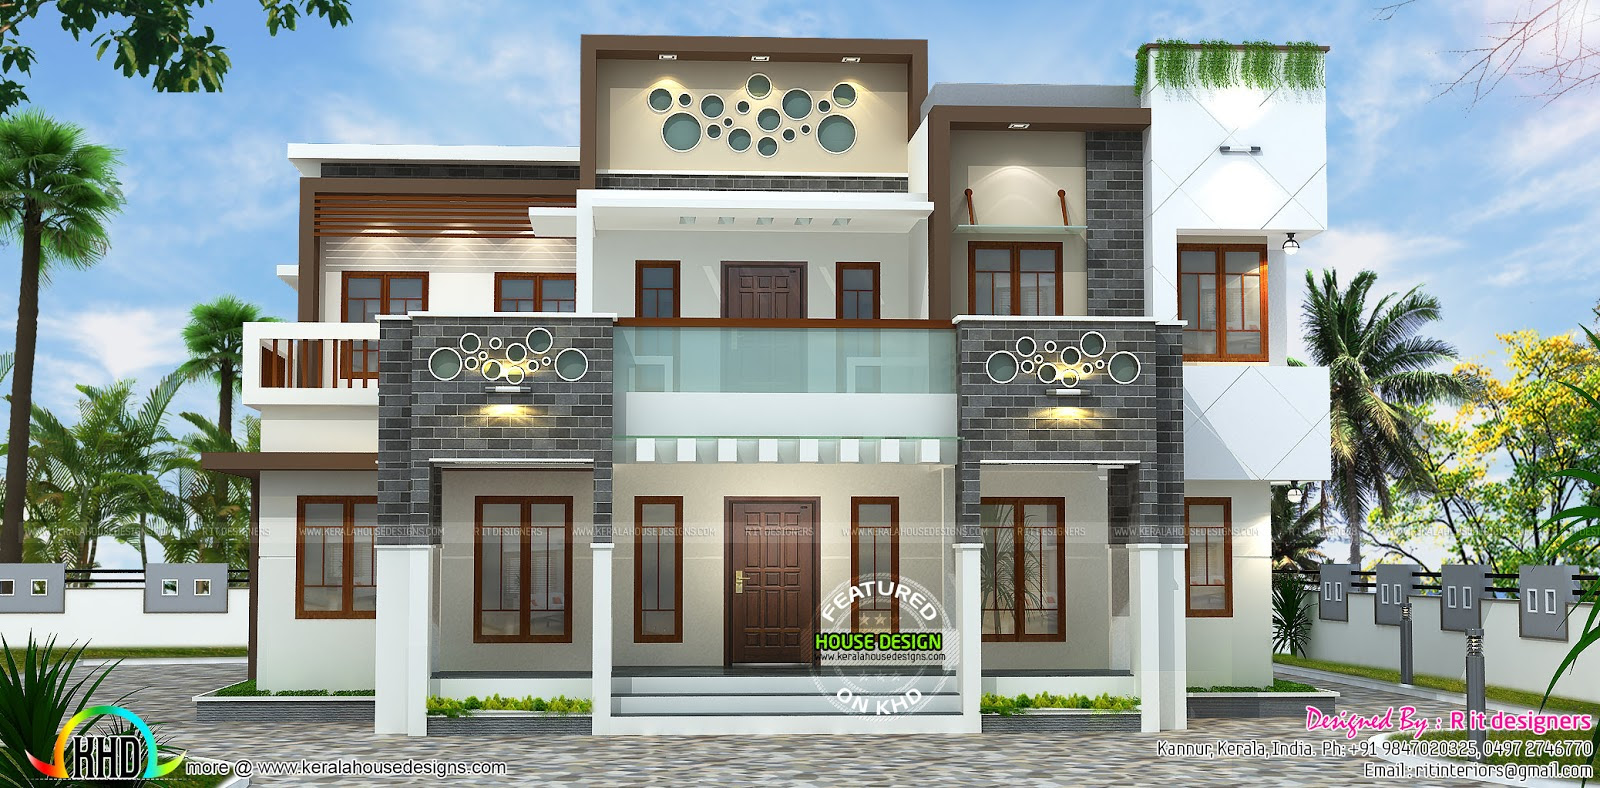 Parapet Wall Elevation Designs In India - Decoration Ideas